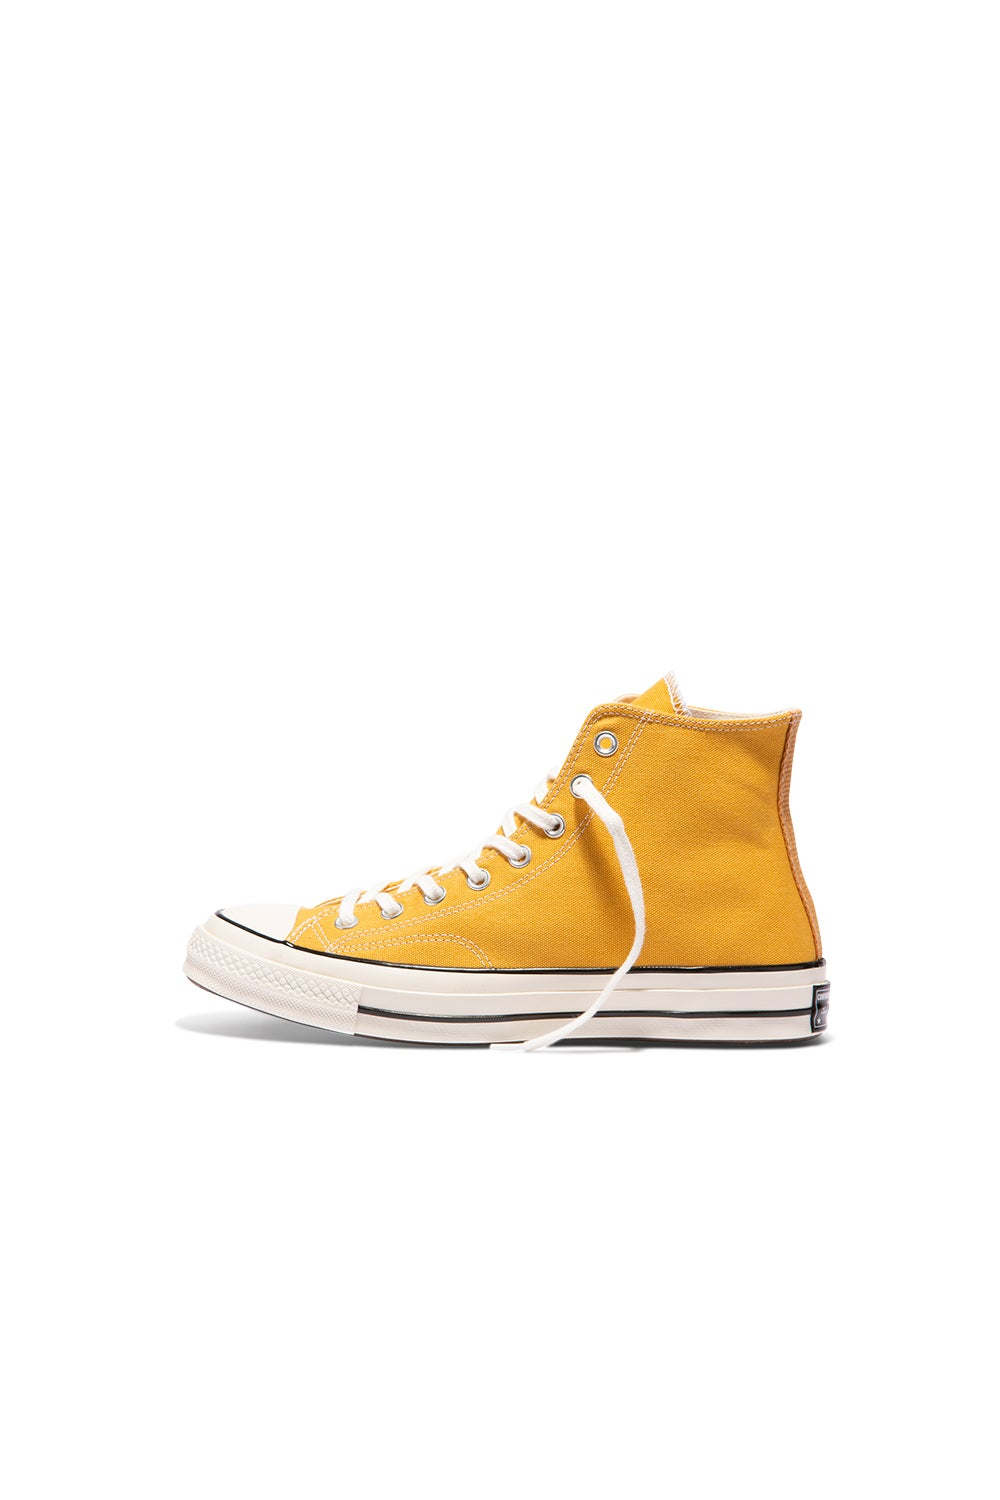 Converse Chuck Taylor 70 High Top Sunflower/Black/Egret